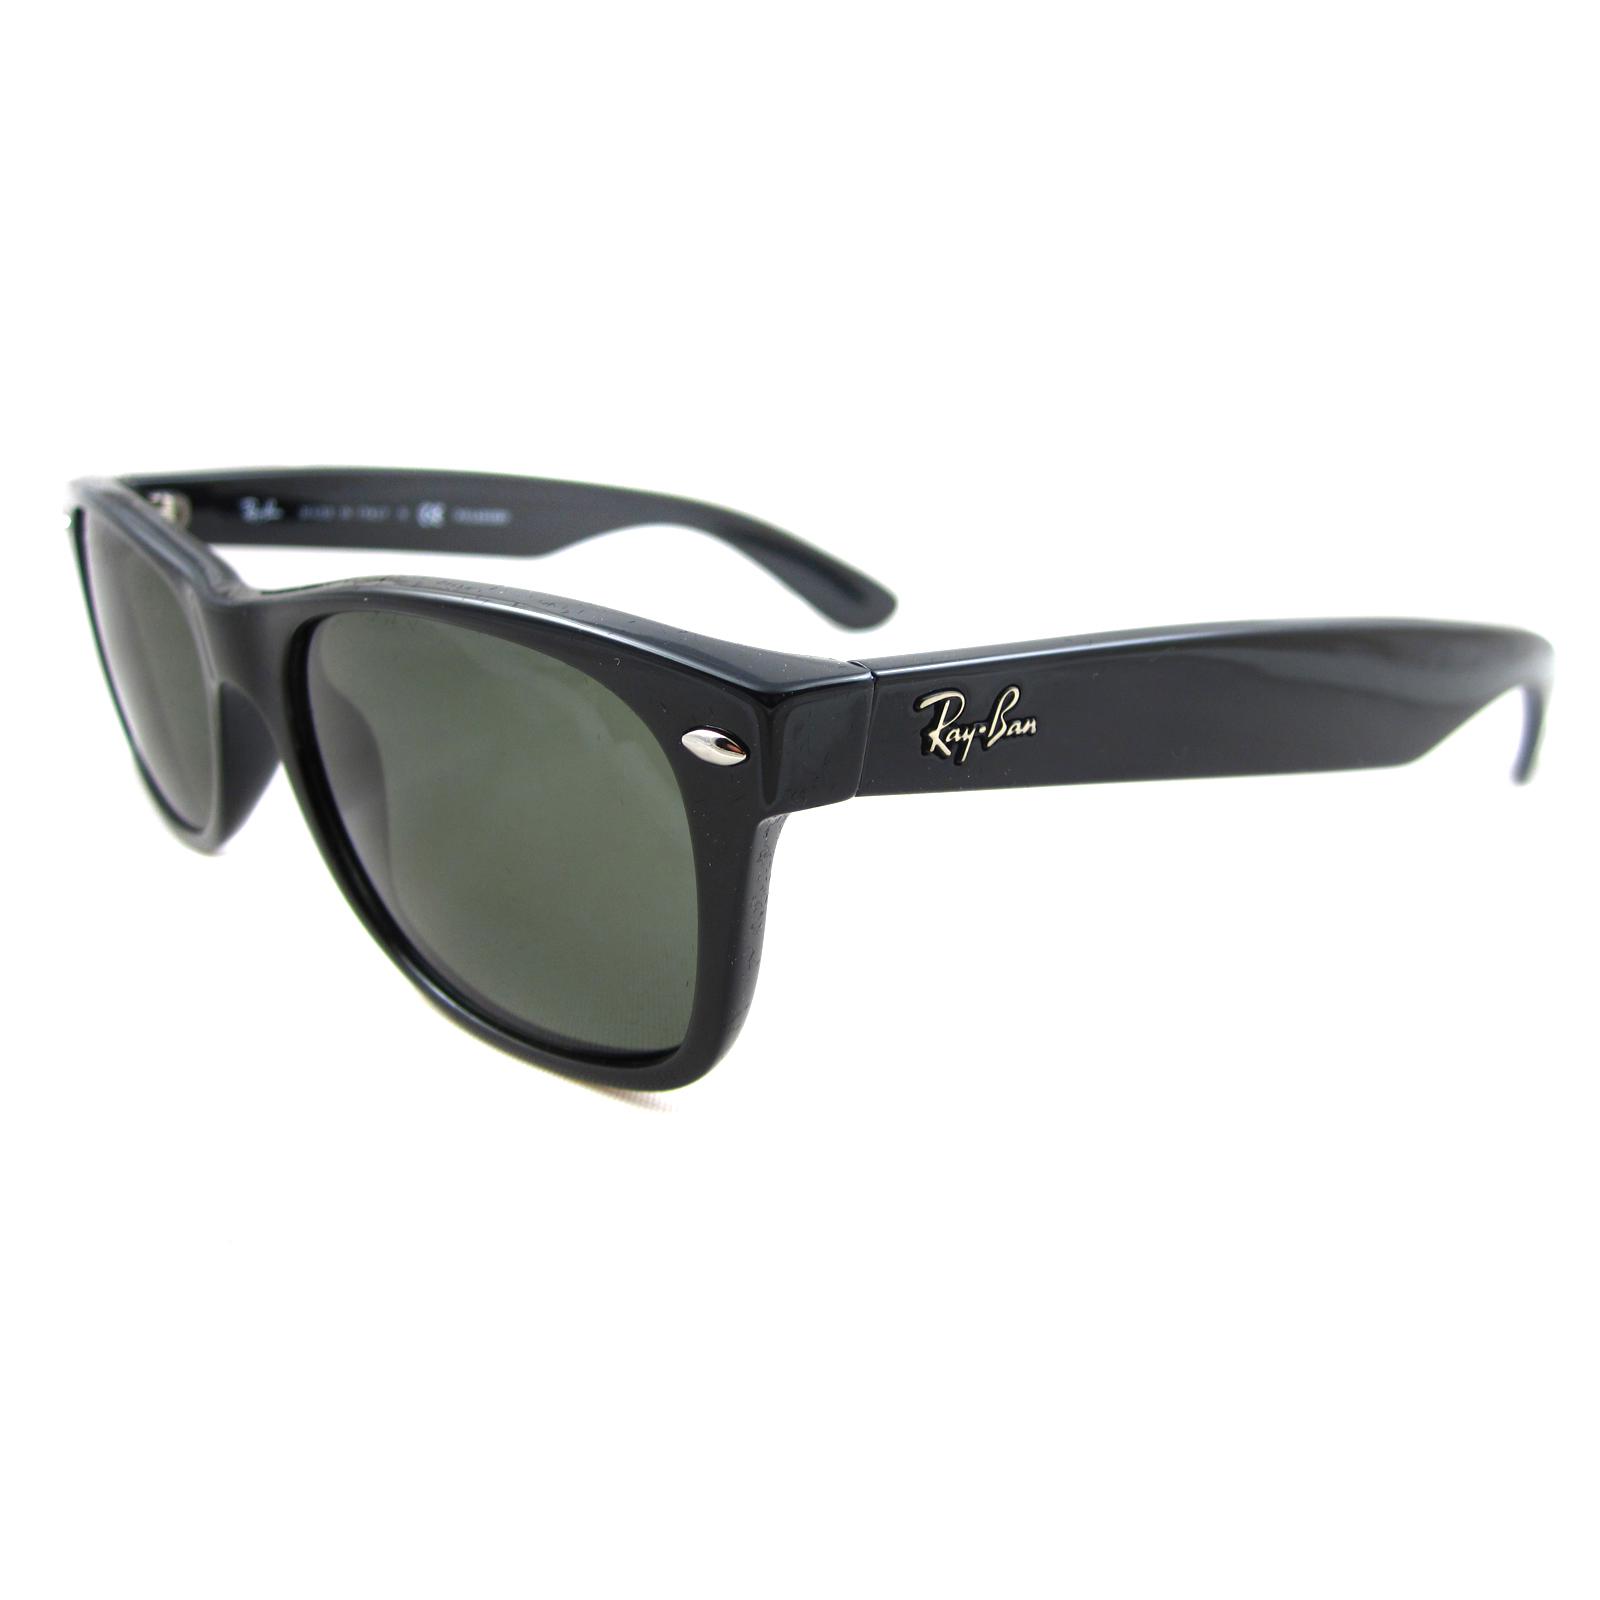 38bfea7a60 Sentinel Thumbnail 1. Sentinel Ray-Ban Sunglasses New Wayfarer 2132 901 58  Black Green Polarized